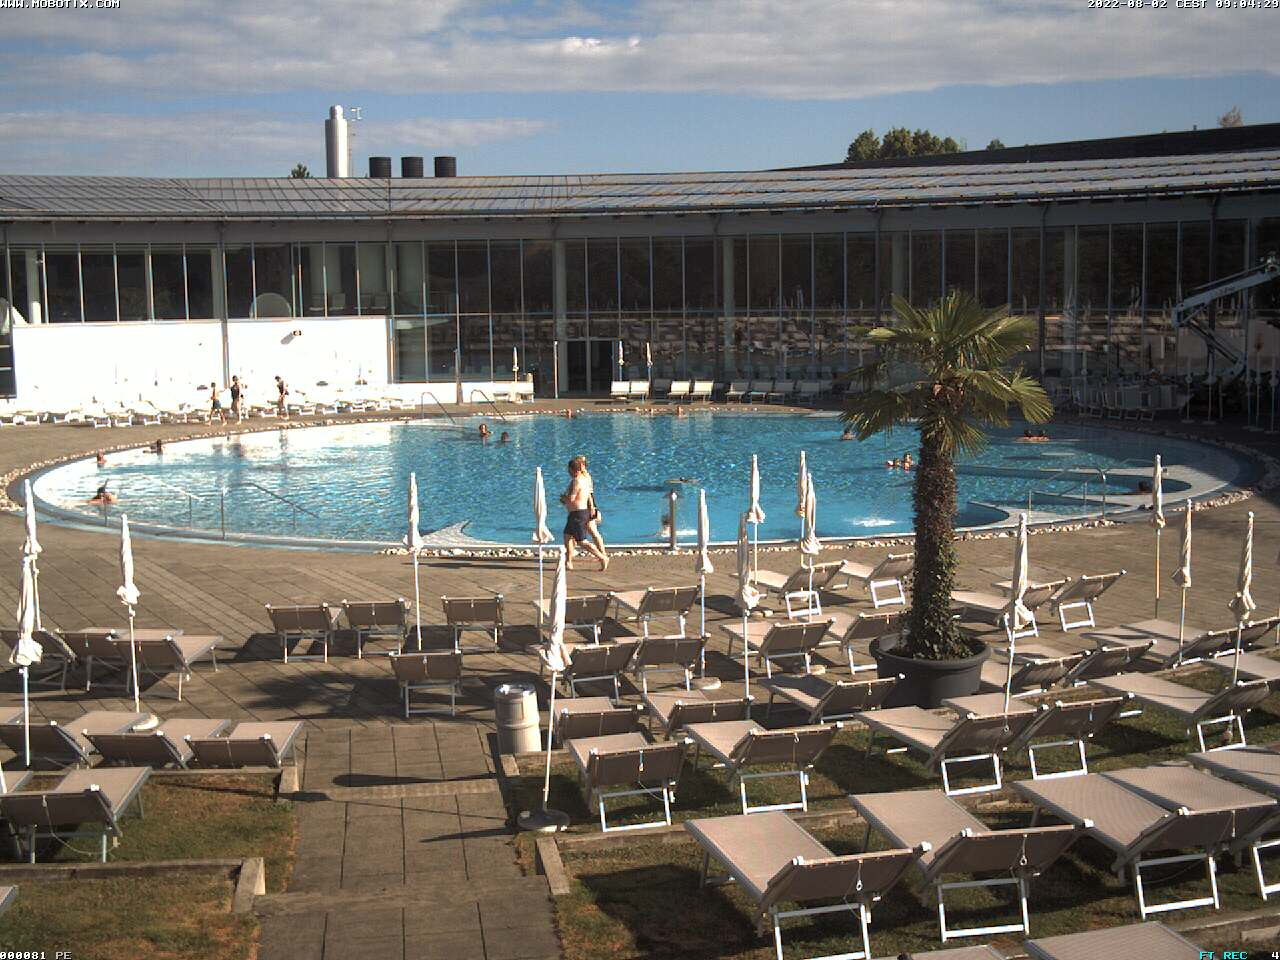 Outdoor thermal pool